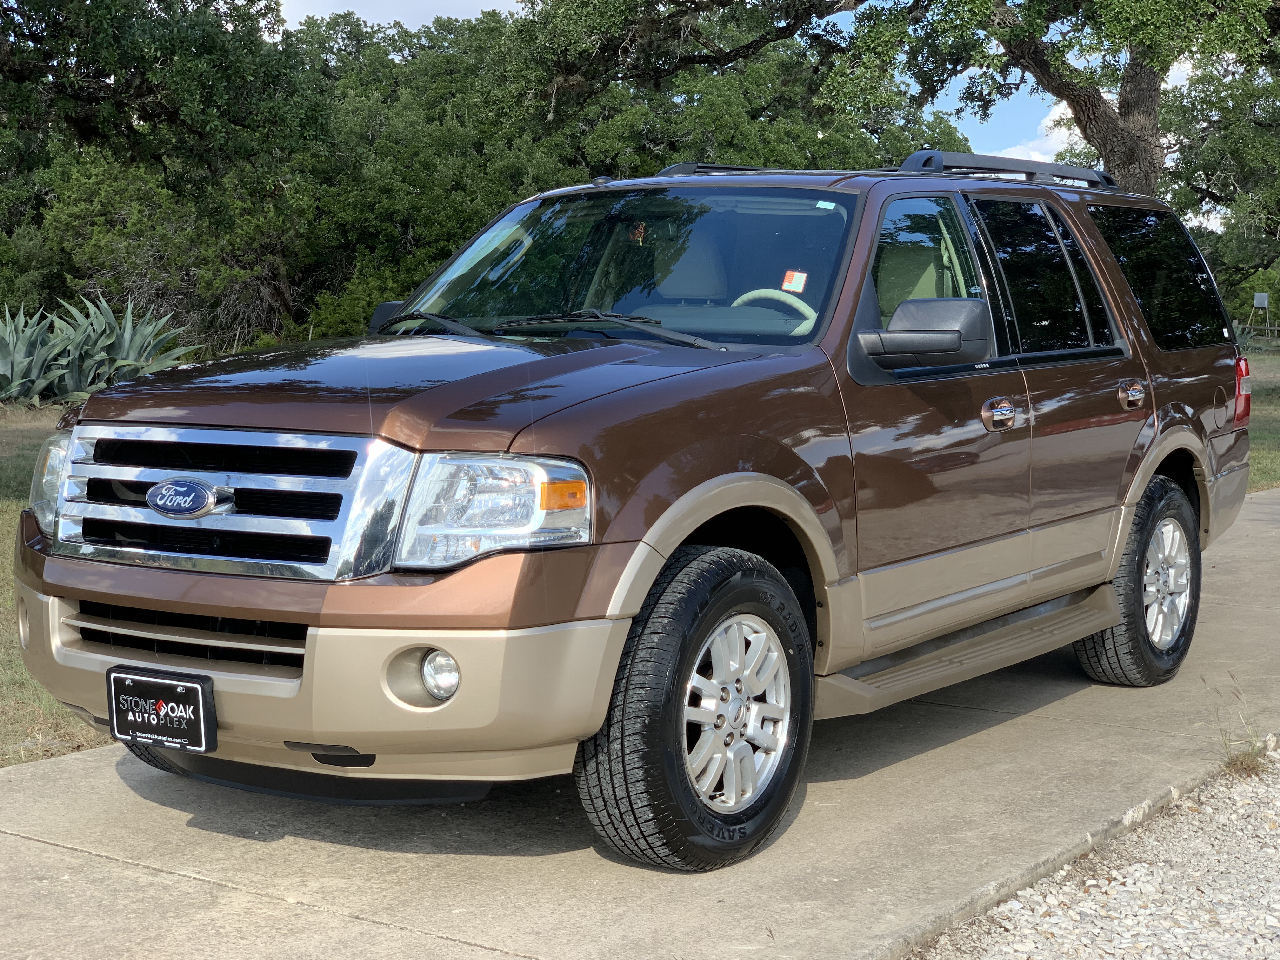 2012 Ford Expedition 2WD 4dr Eddie Bauer